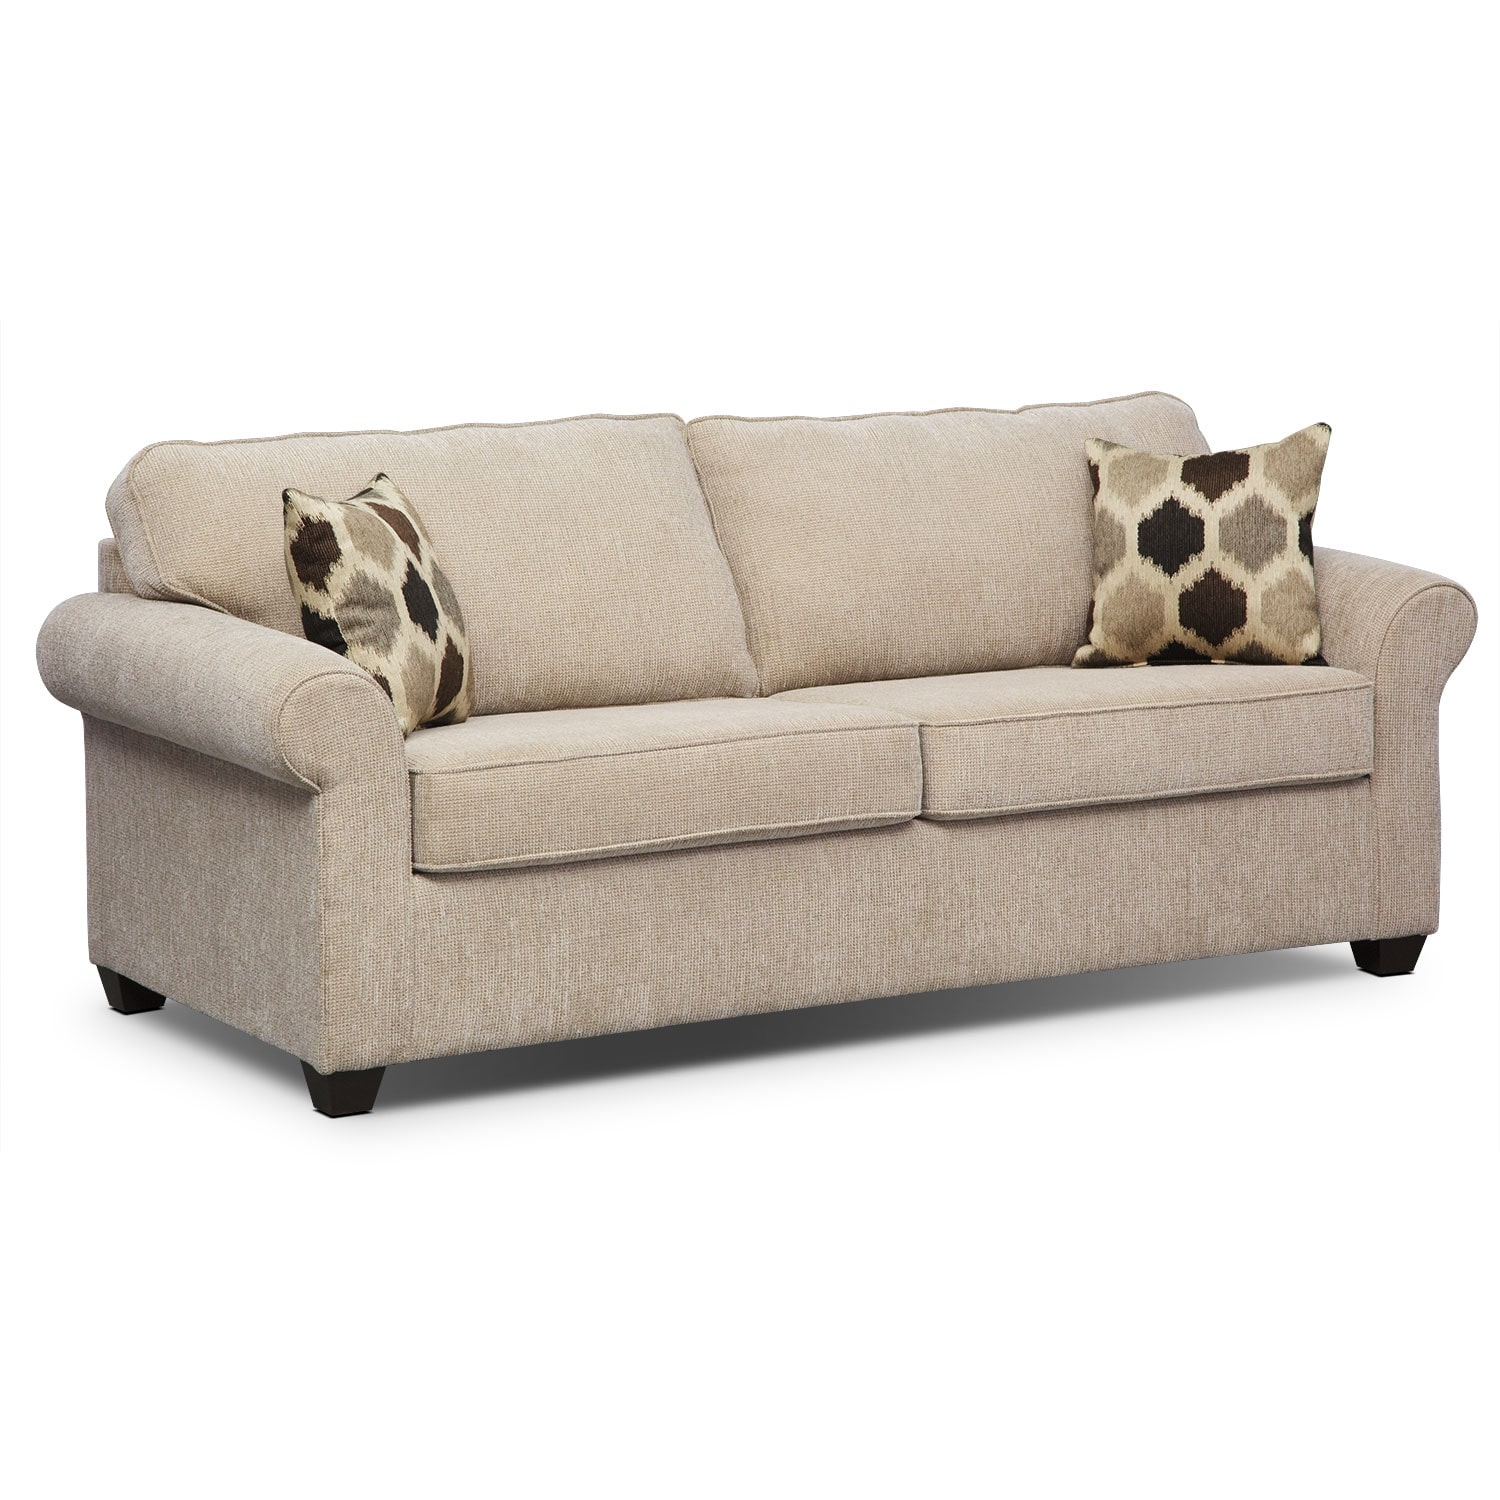 Fletcher queen memory foam sleeper sofa beige american for Sofa queen bed